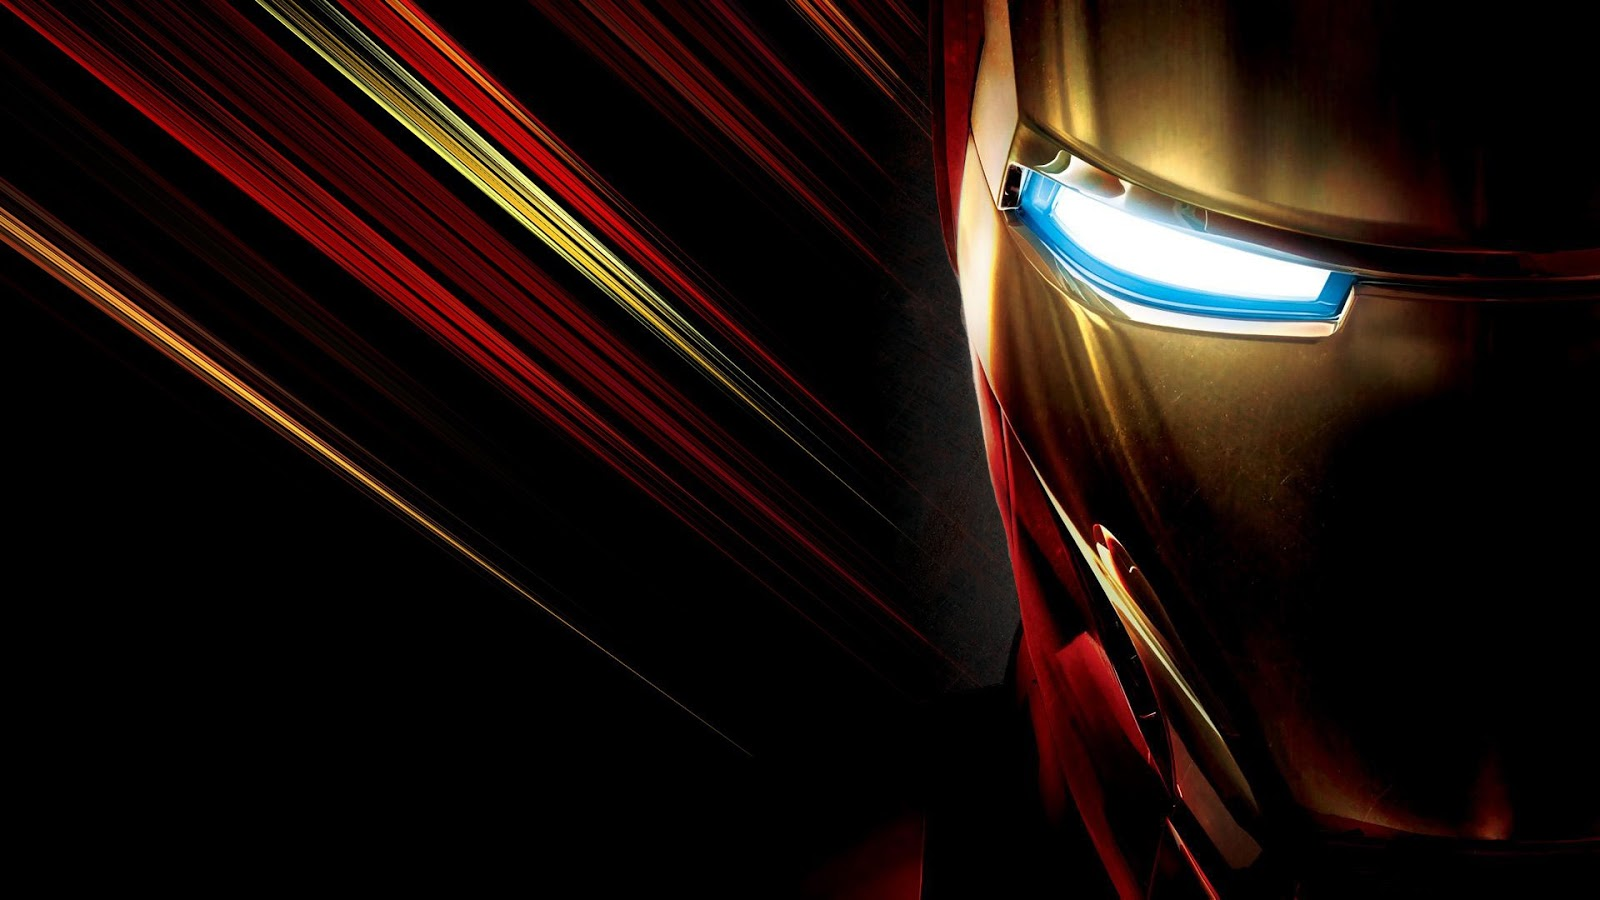 1920x1080 Iron Man Wallpaper